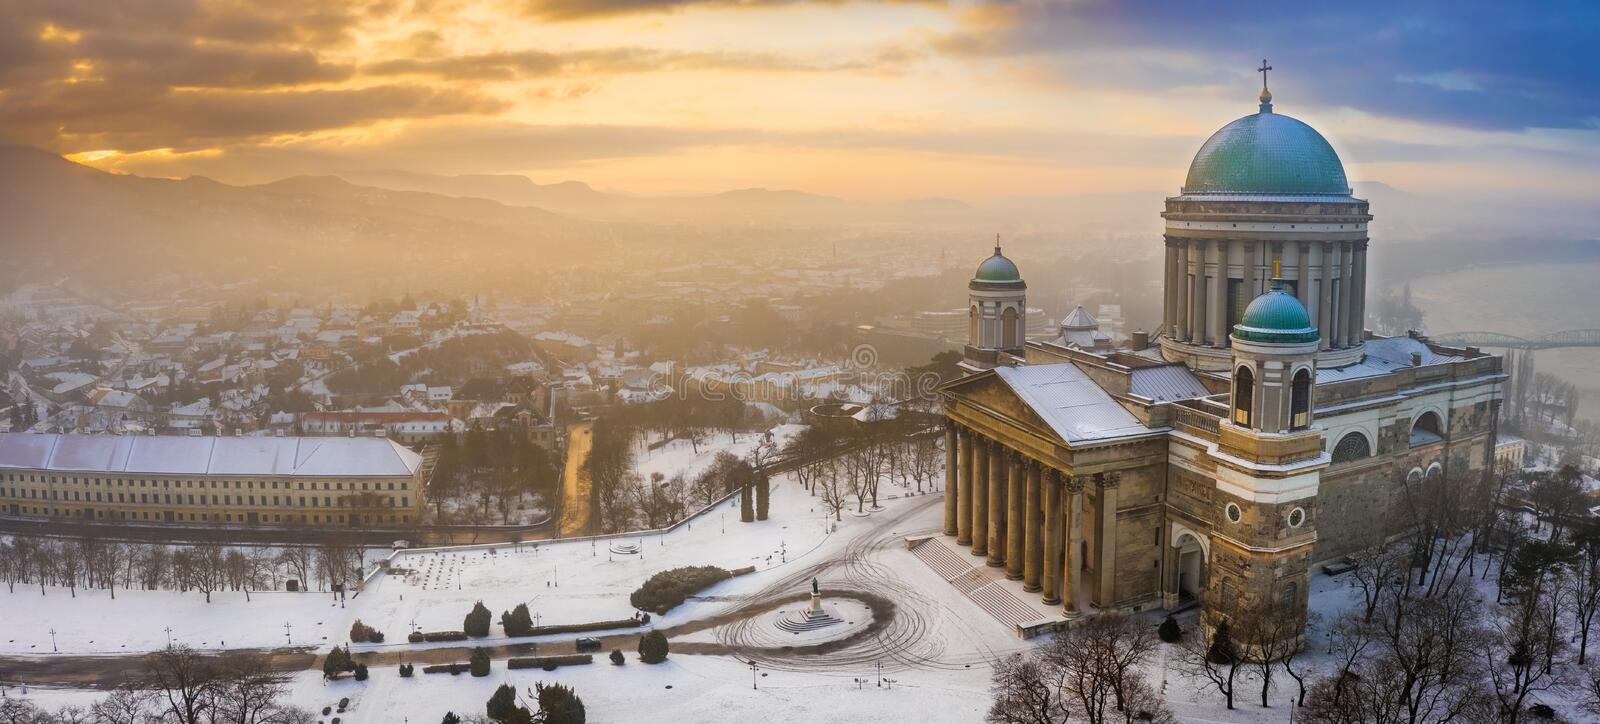 Esztergom, Hungary - Aerial panoramic view of the snowy Esztergom Basilica with a winter sunrise. Esztergom, Hungary - Aerial panoramic view of the snowy royalty free stock photography